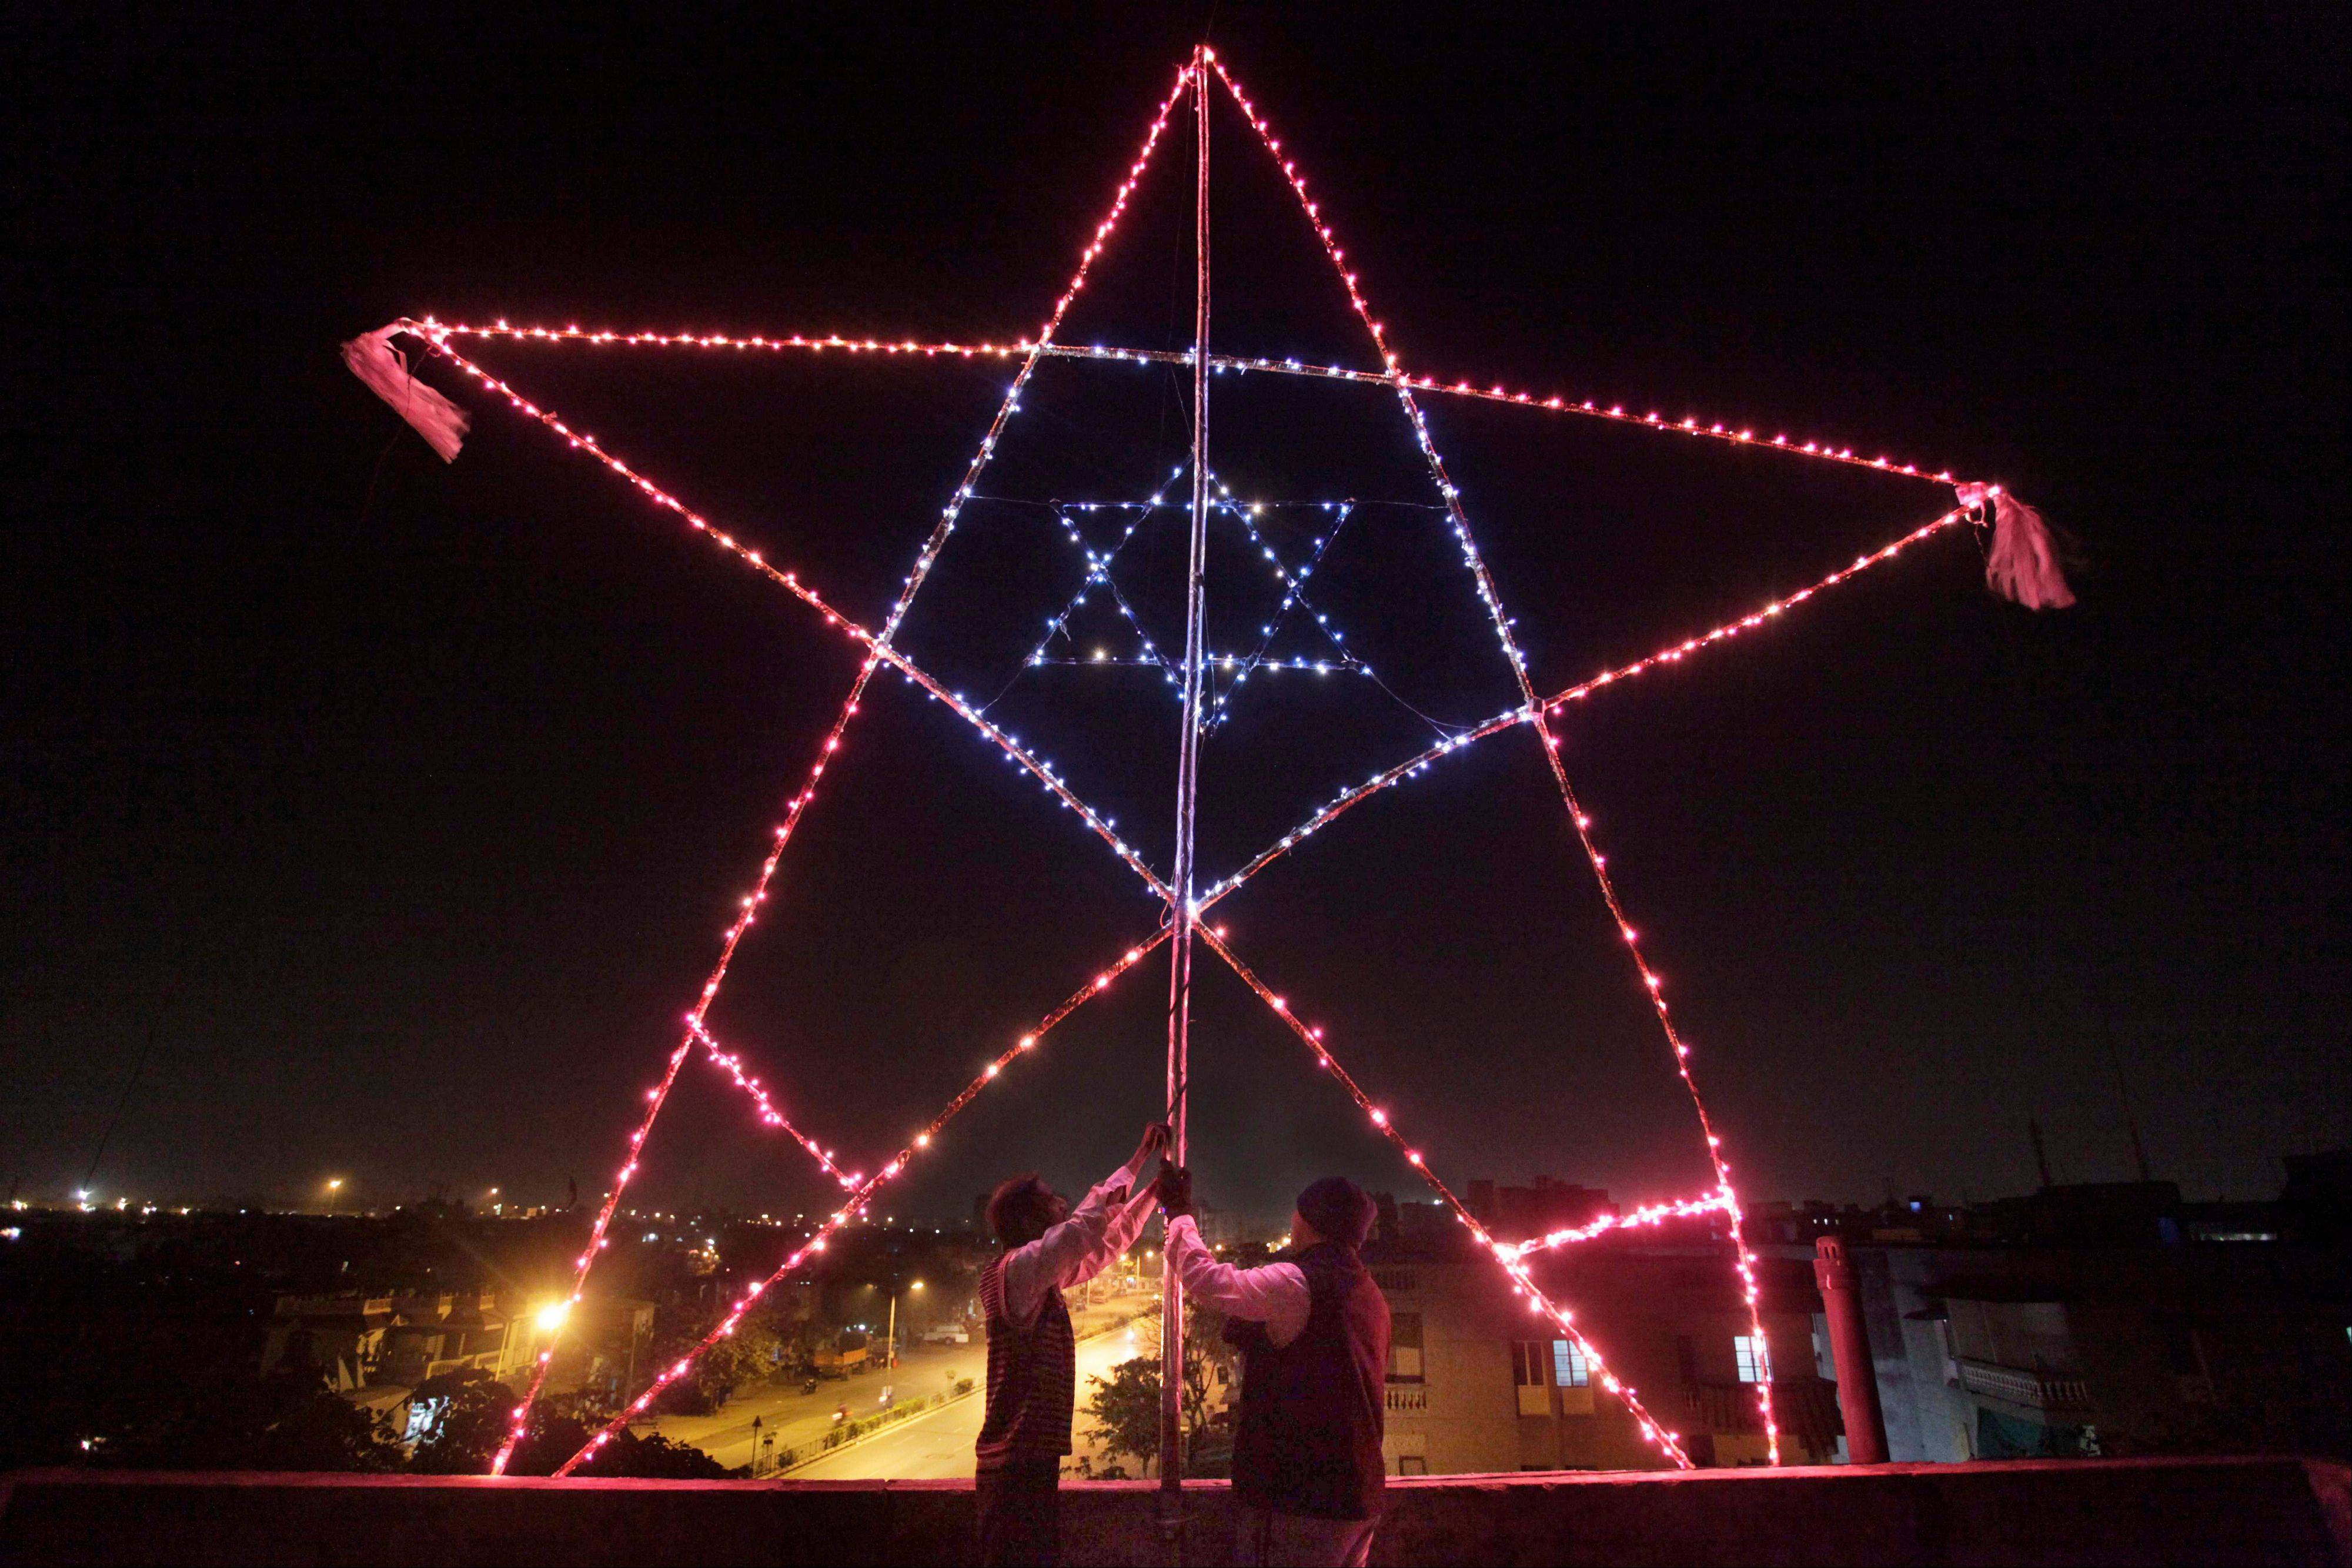 In this Monday Dec. 23, 2013, photo, Indian Christians illuminate a 23 feet (7 meter) huge star on the terrace of their residential building in Ahmadabad, India. Although Christians comprise only two percent of the Indian population but Christmas is a national holiday and is observed across the country as an occasion to celebrate.